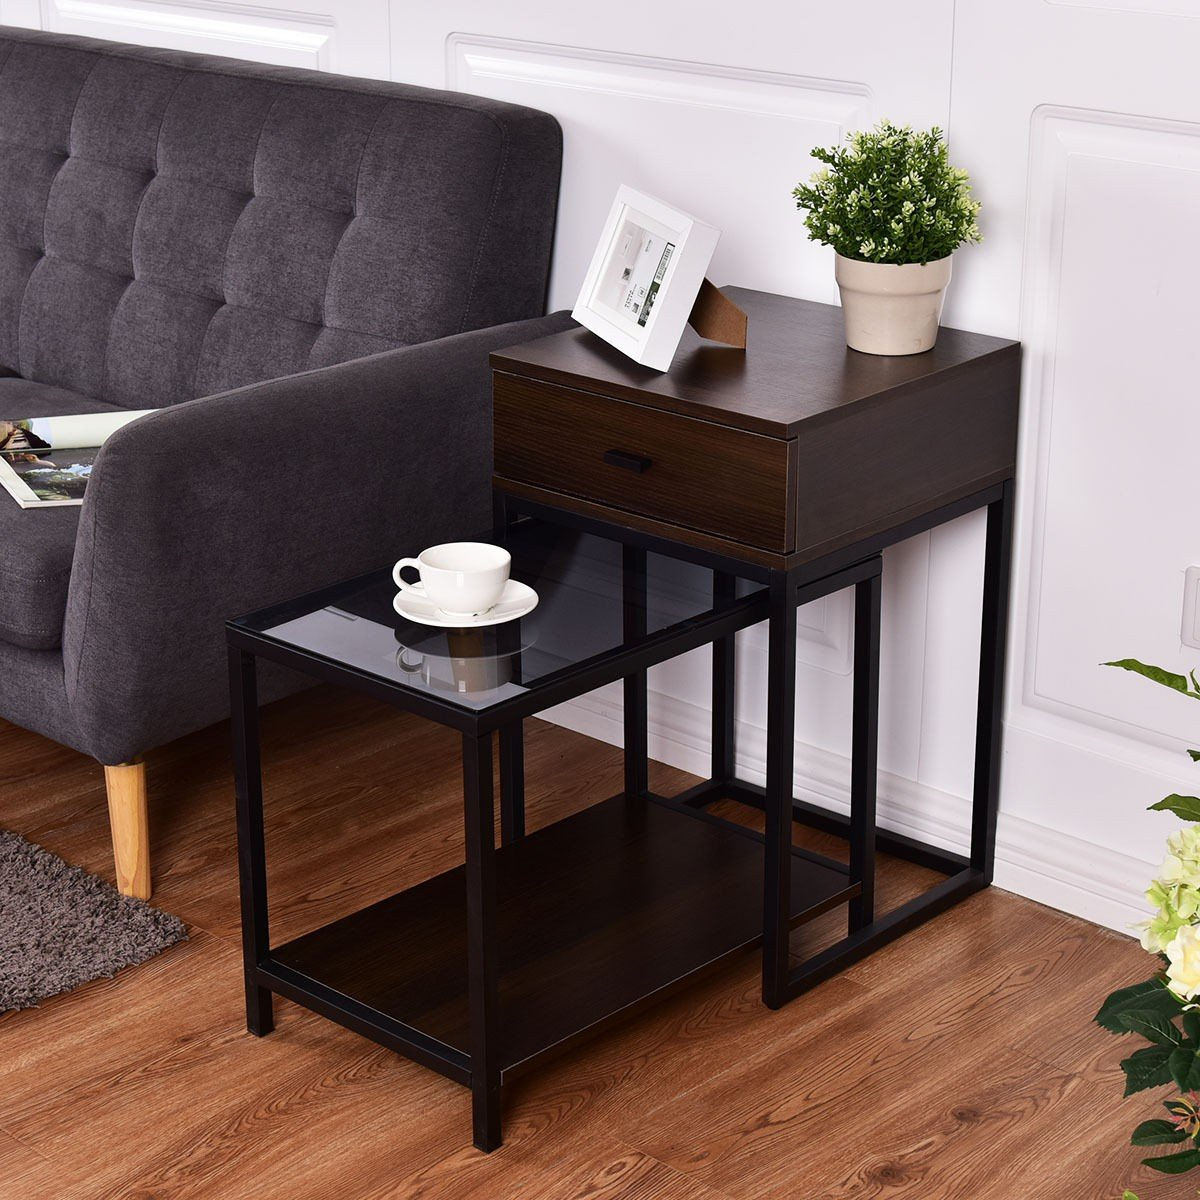 2 pcs Metal Frame Wood Glass Top Nesting Side Table - by Choice Products by choice